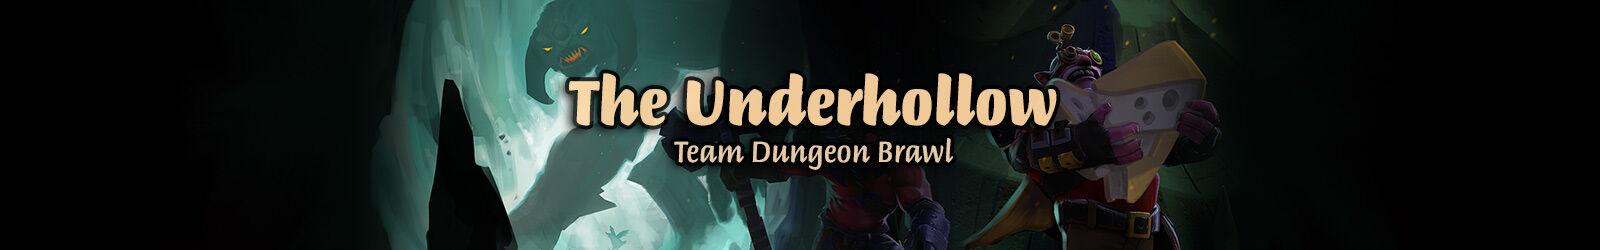 Main Page Giant Banner The Underhollow.jpg